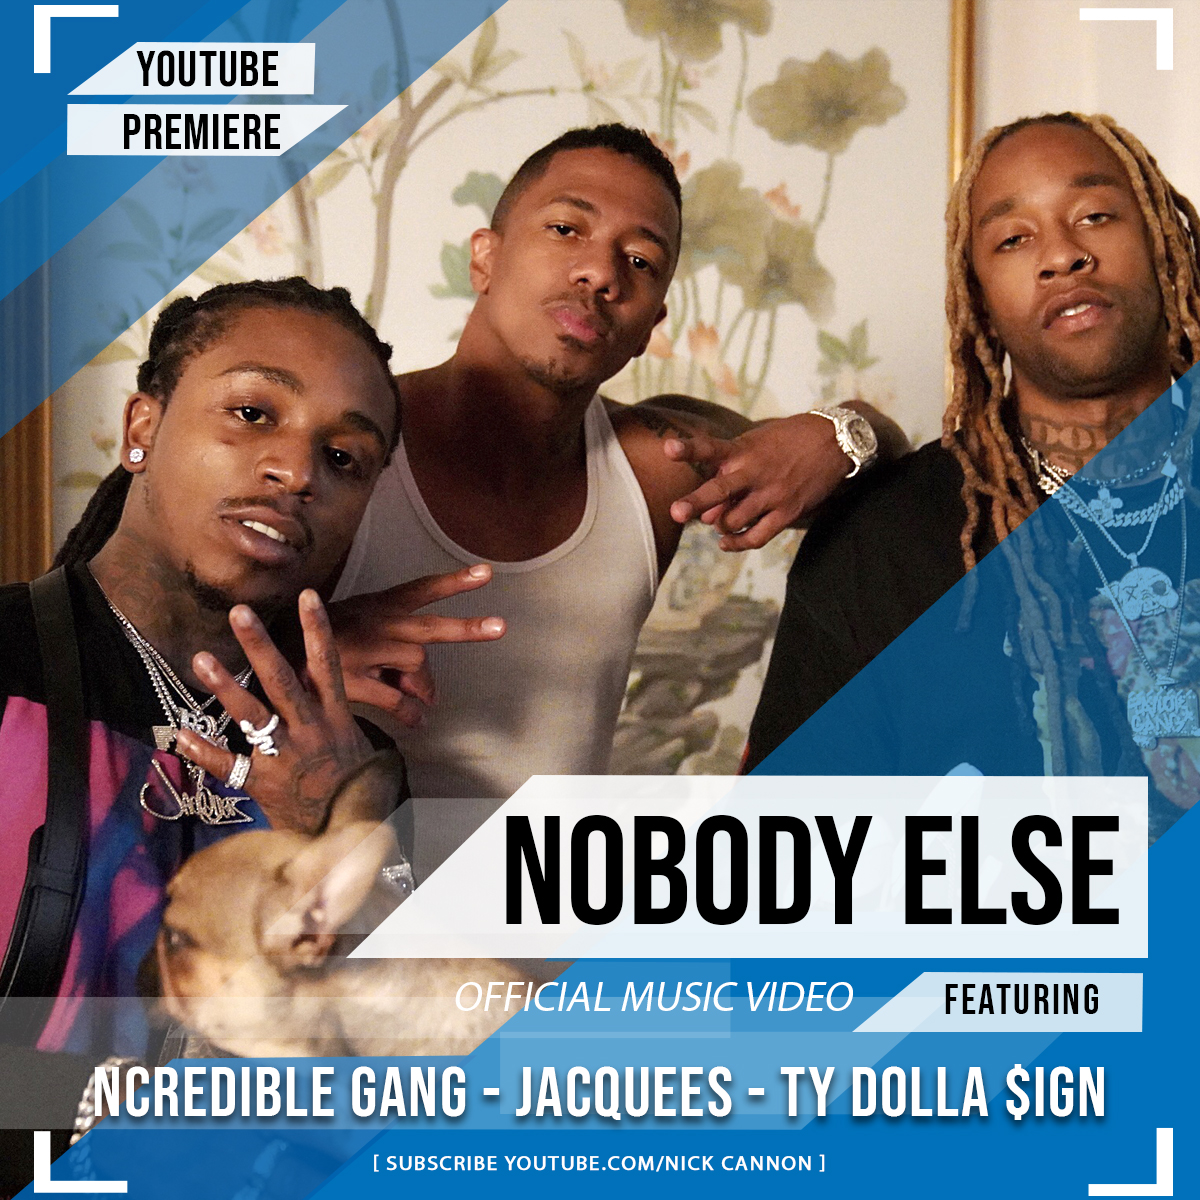 WATCH: NICK CANNON DROPS TY DOLLA $IGN + JACQUEES' NEW NOBODY ELSE VIDEO